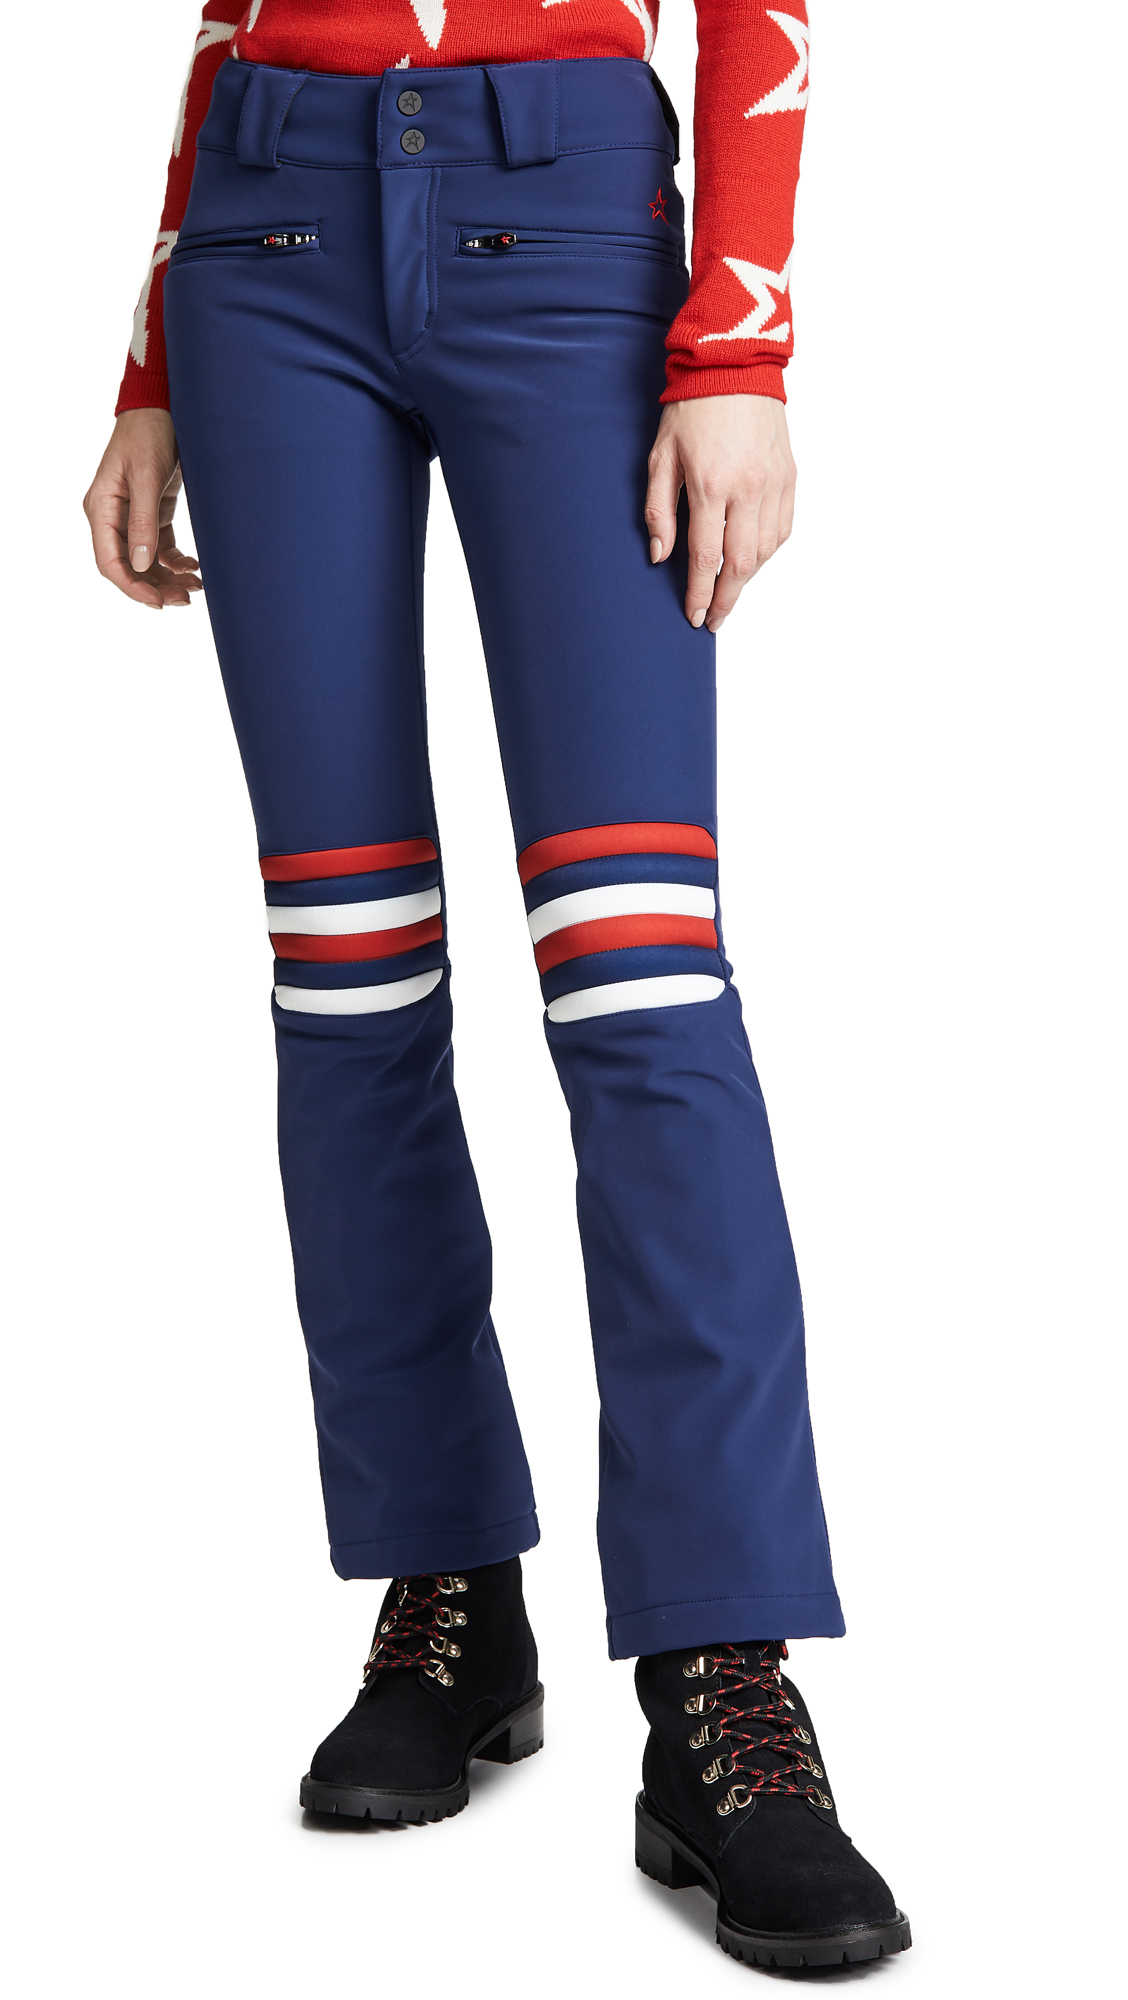 Aurora Flare Striped Ski Pants in Blue